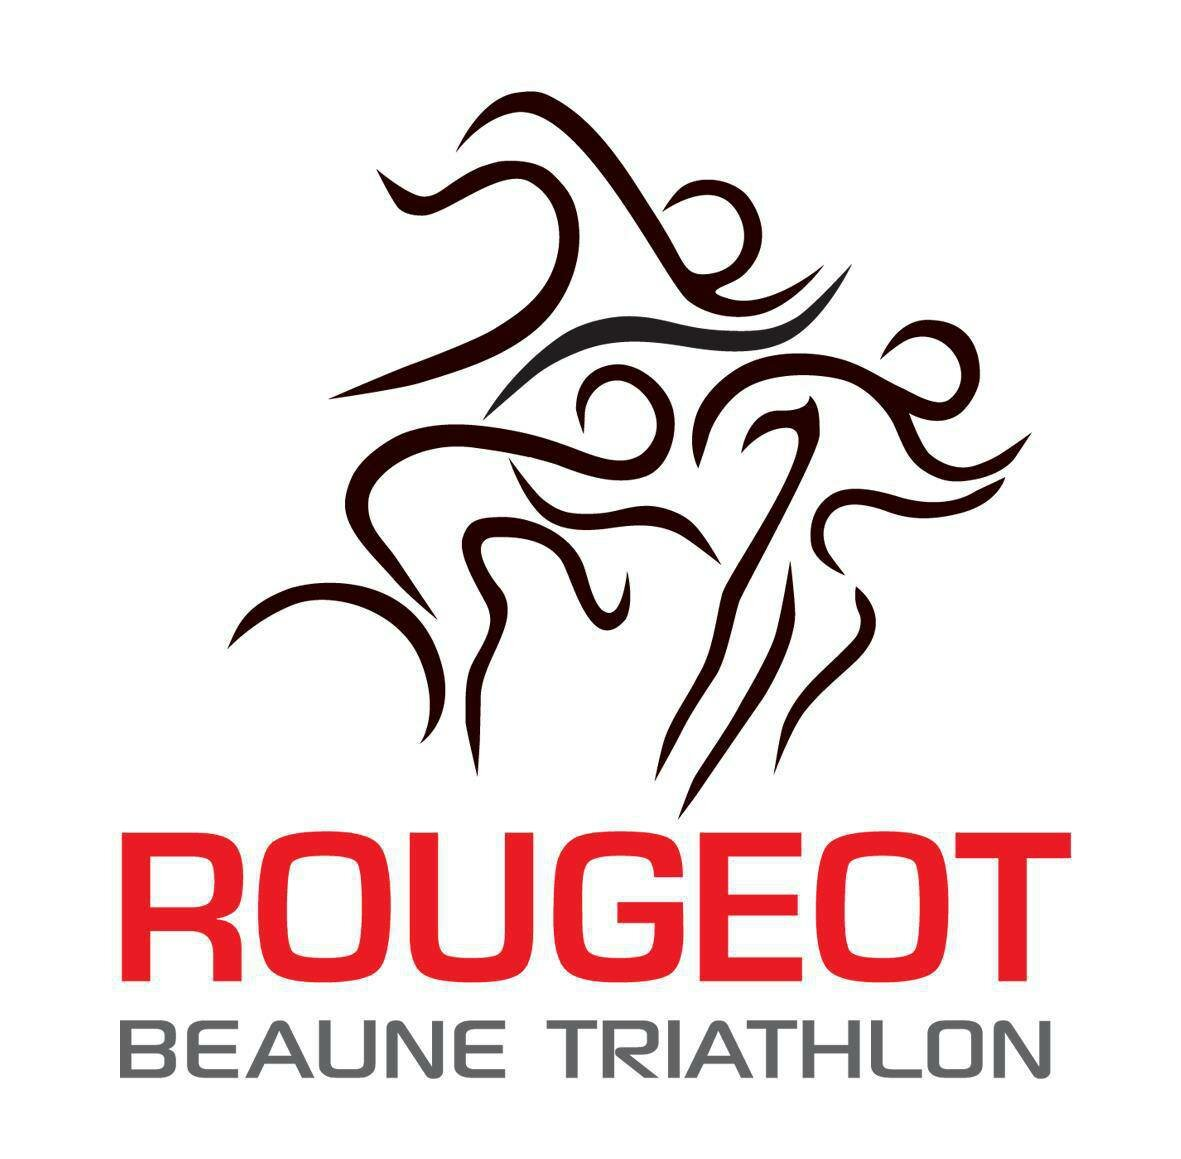 Logo Rougeot Beaune Triathlon